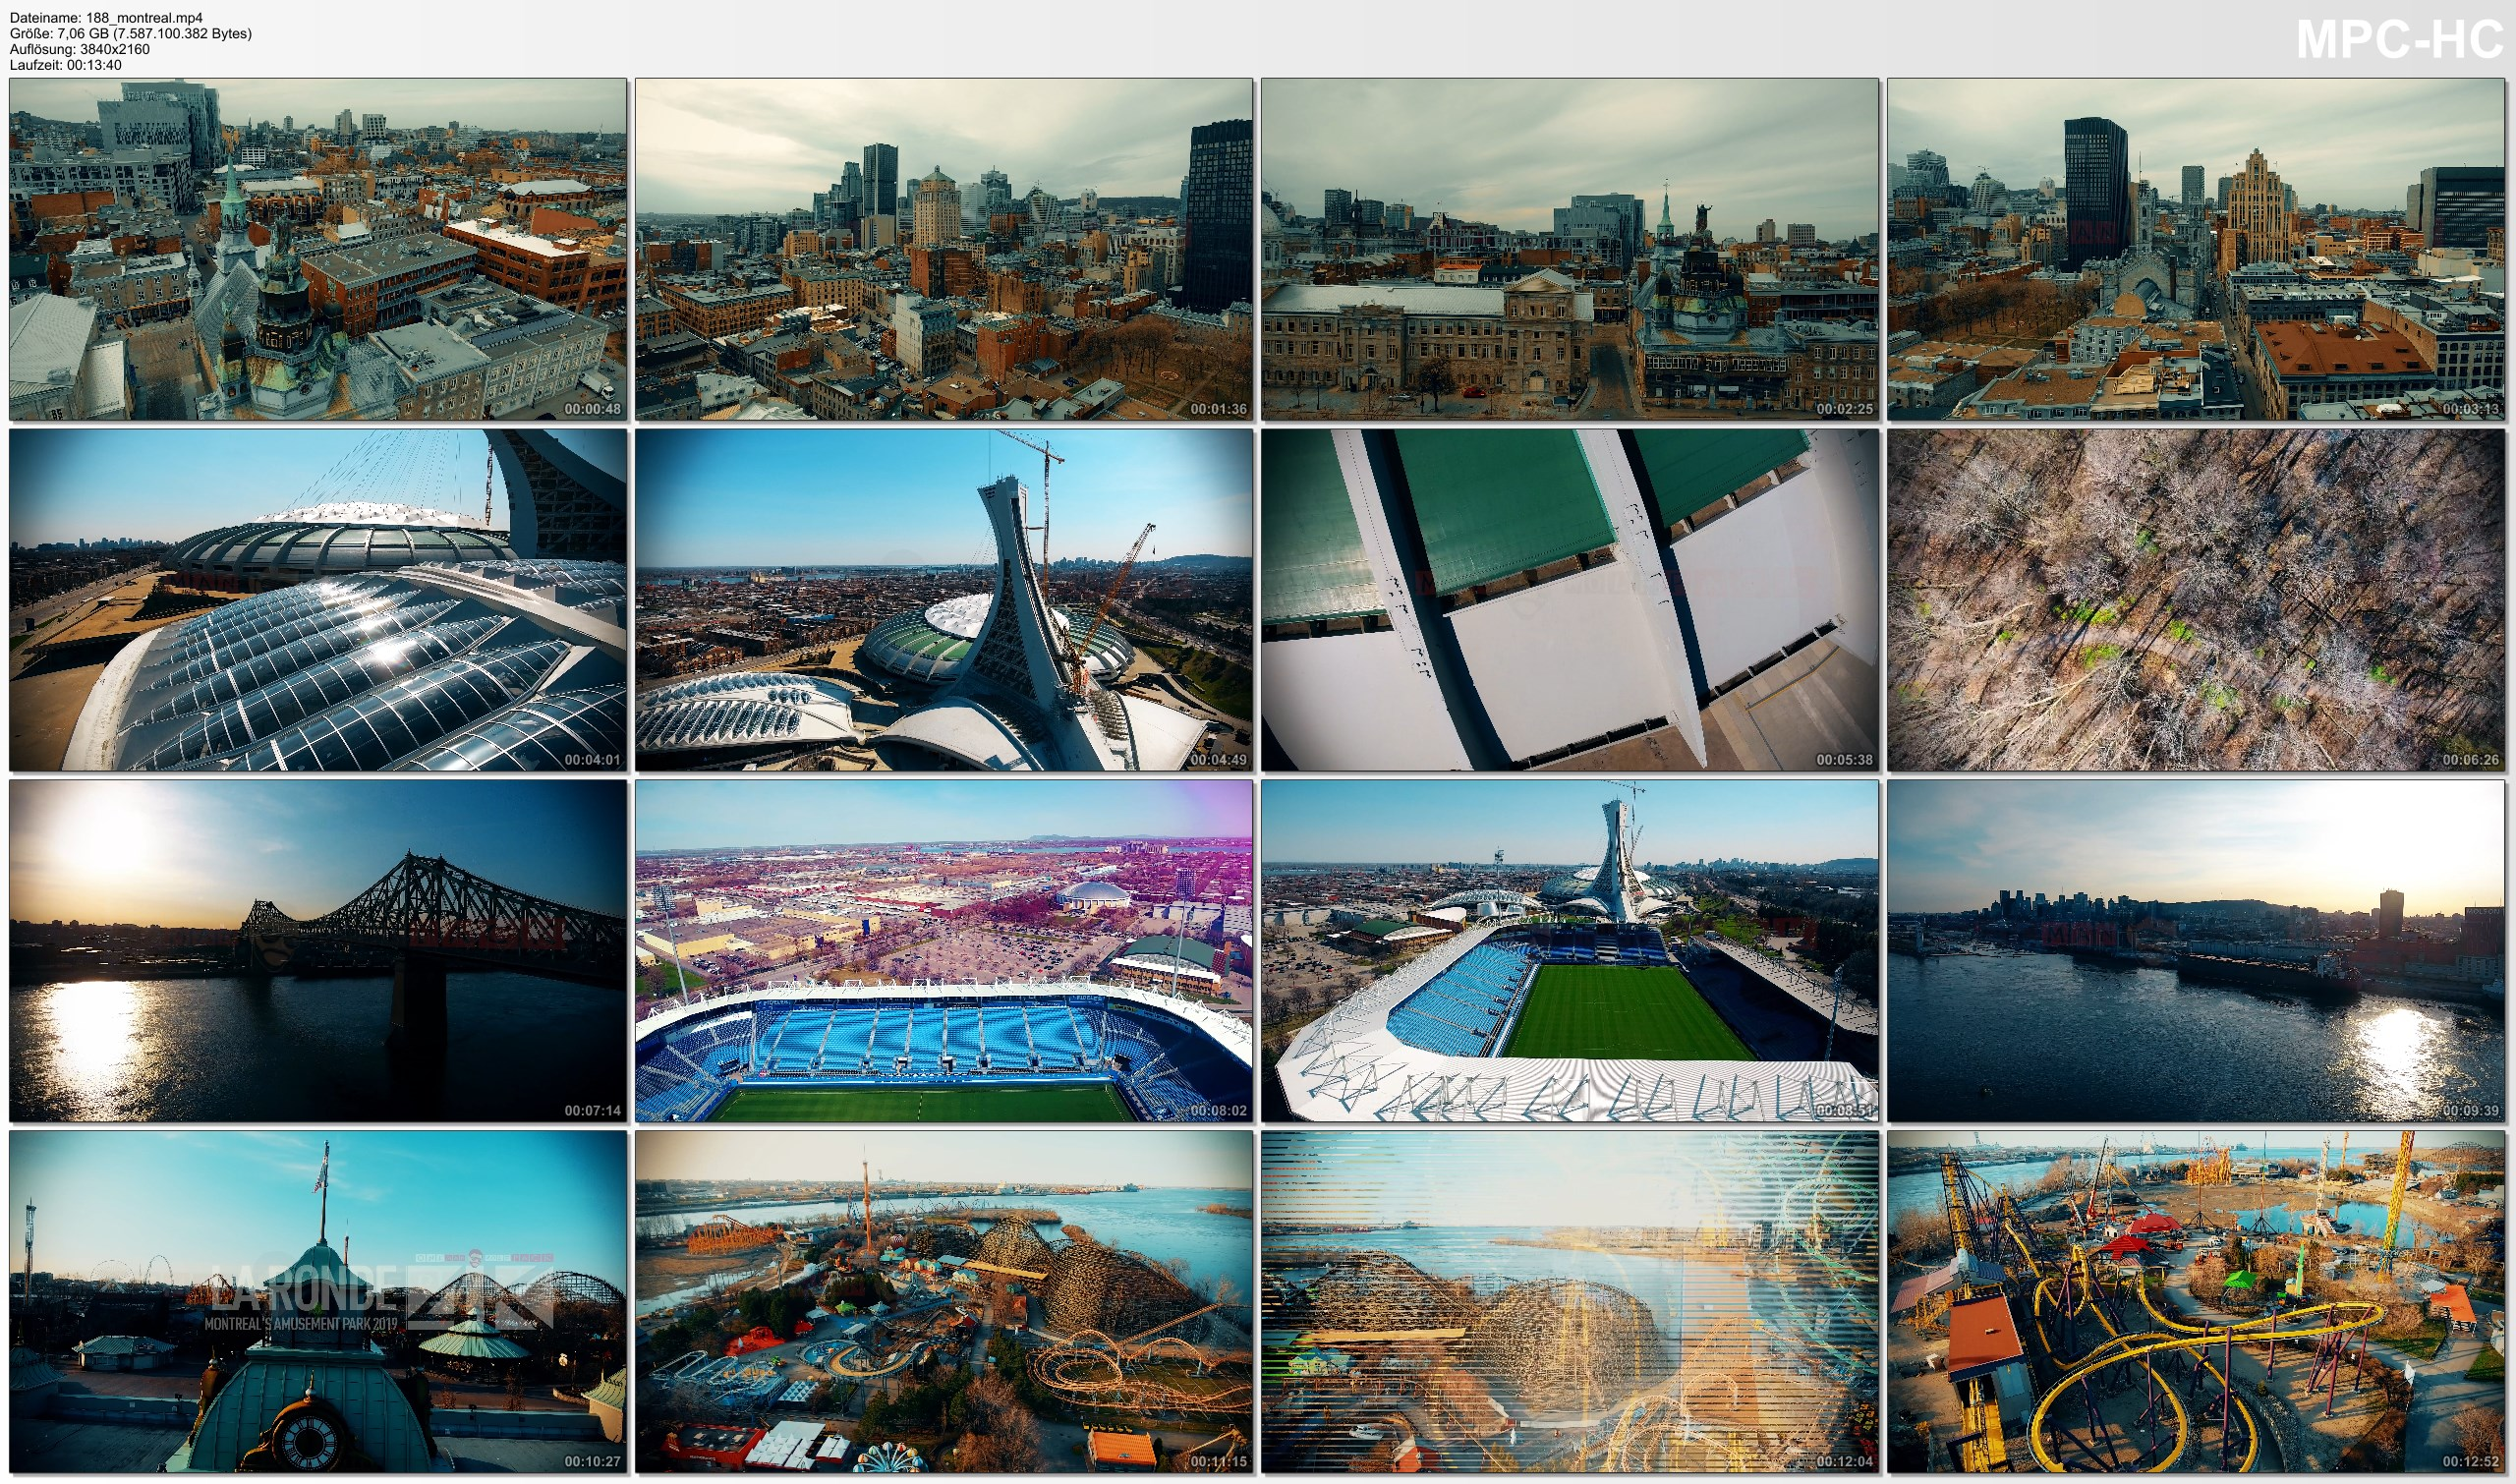 Drone Pictures from Video 【4K】Drone Footage | MONTREAL 2019 ..:: The City of Saints | Downtown · Olympic Park · Stade Saputo